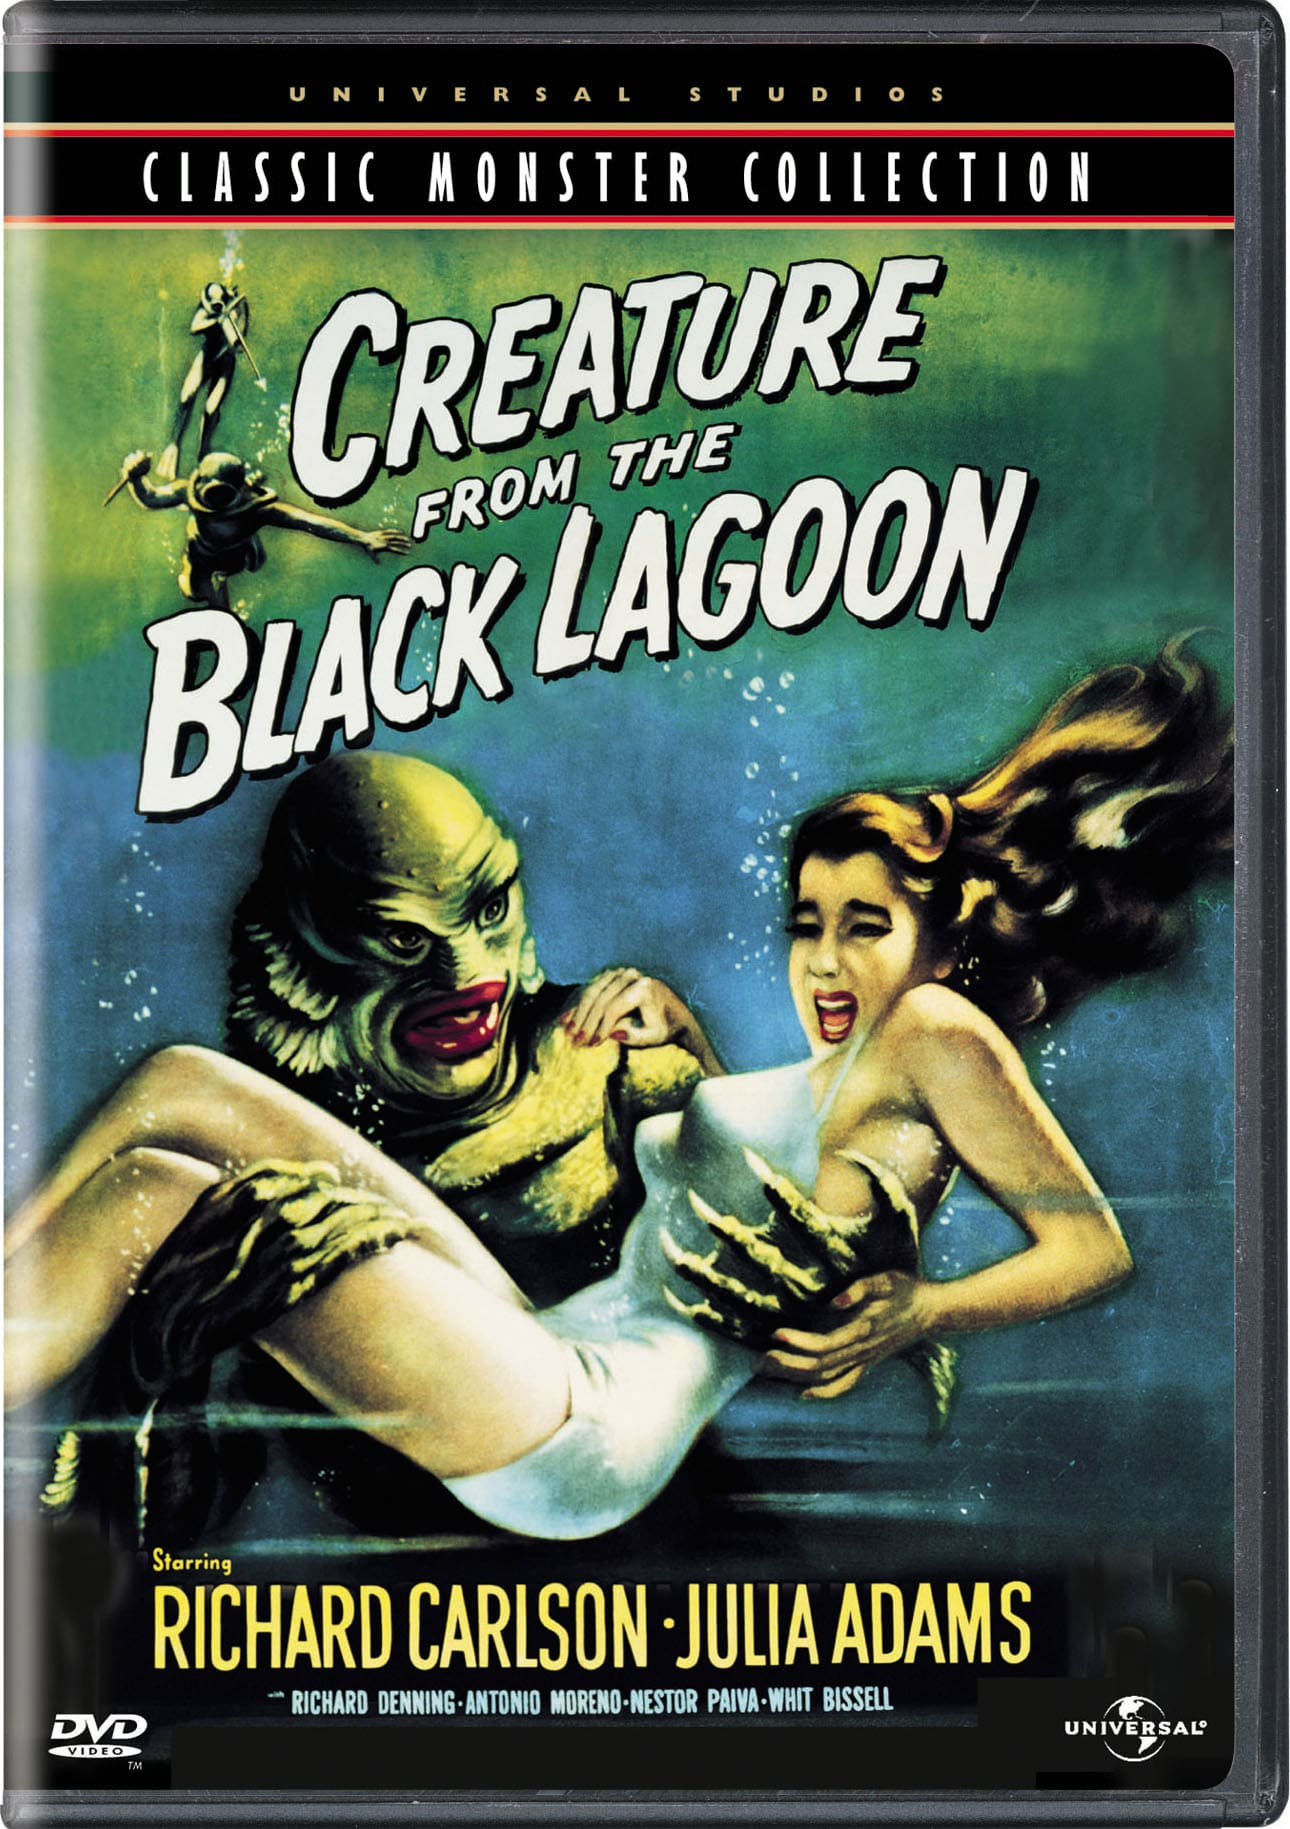 Creature from the Black Lagoon (2000) [DVD]